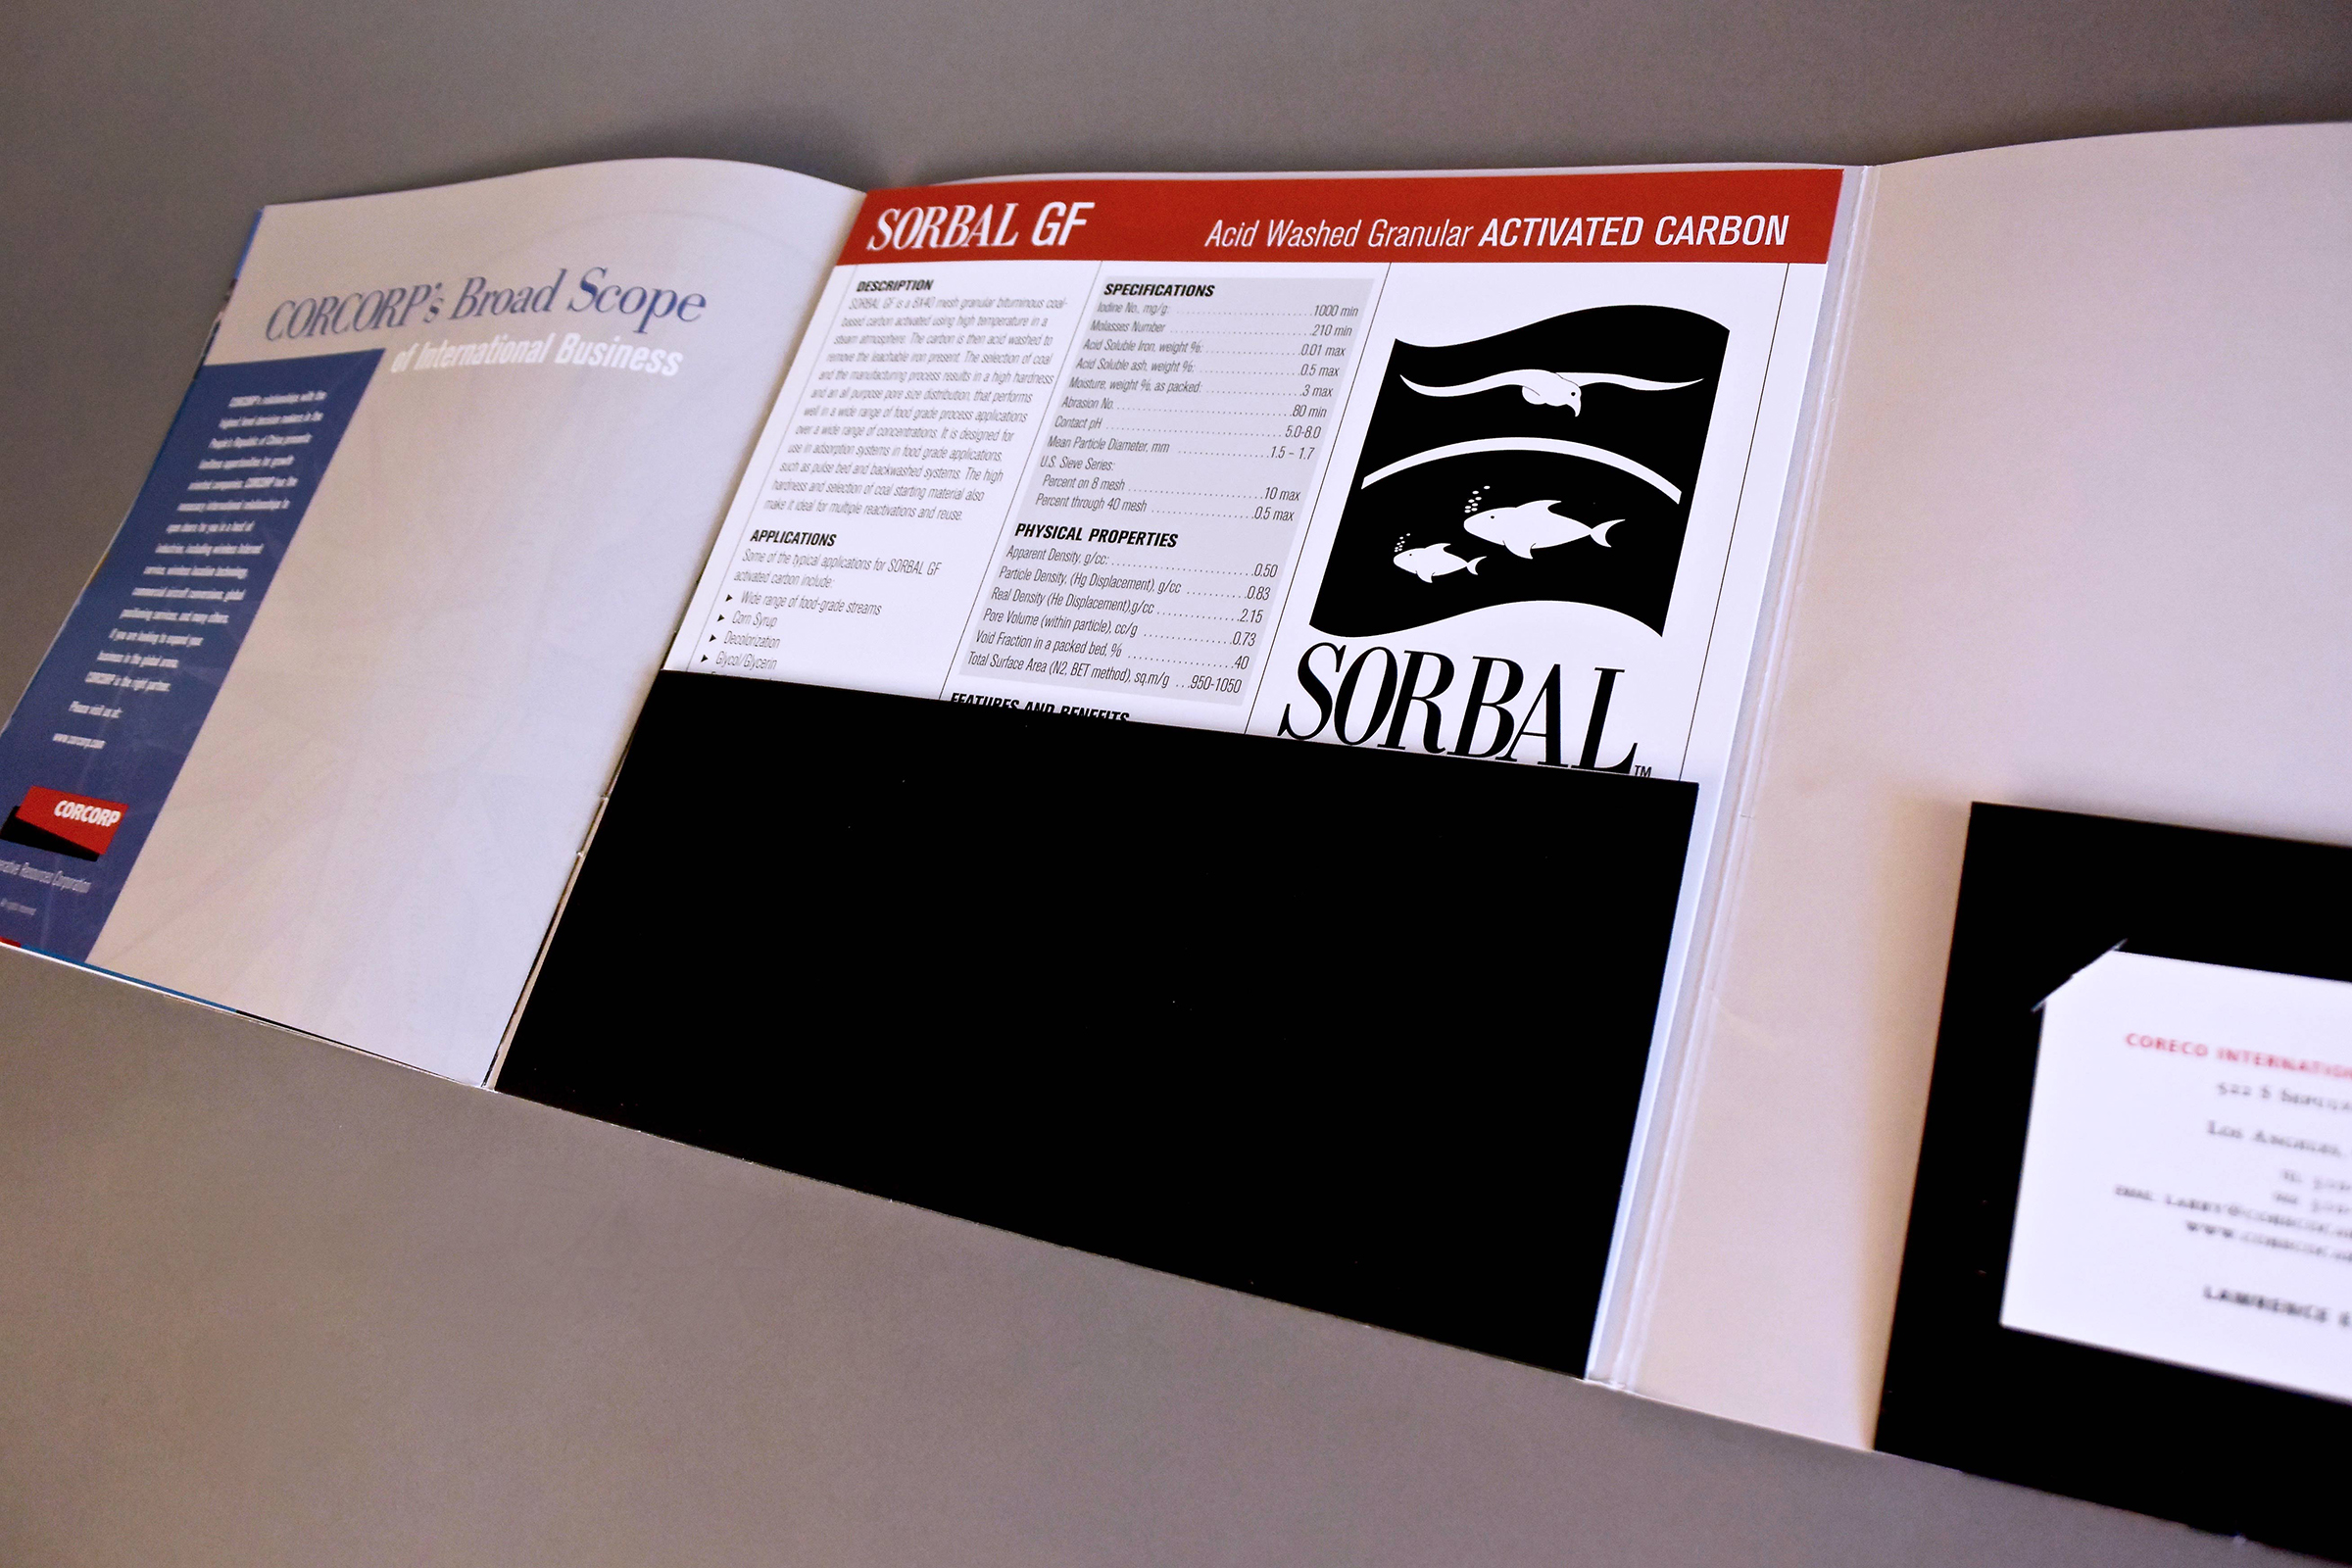 Product Brochure with Product Information Sheets